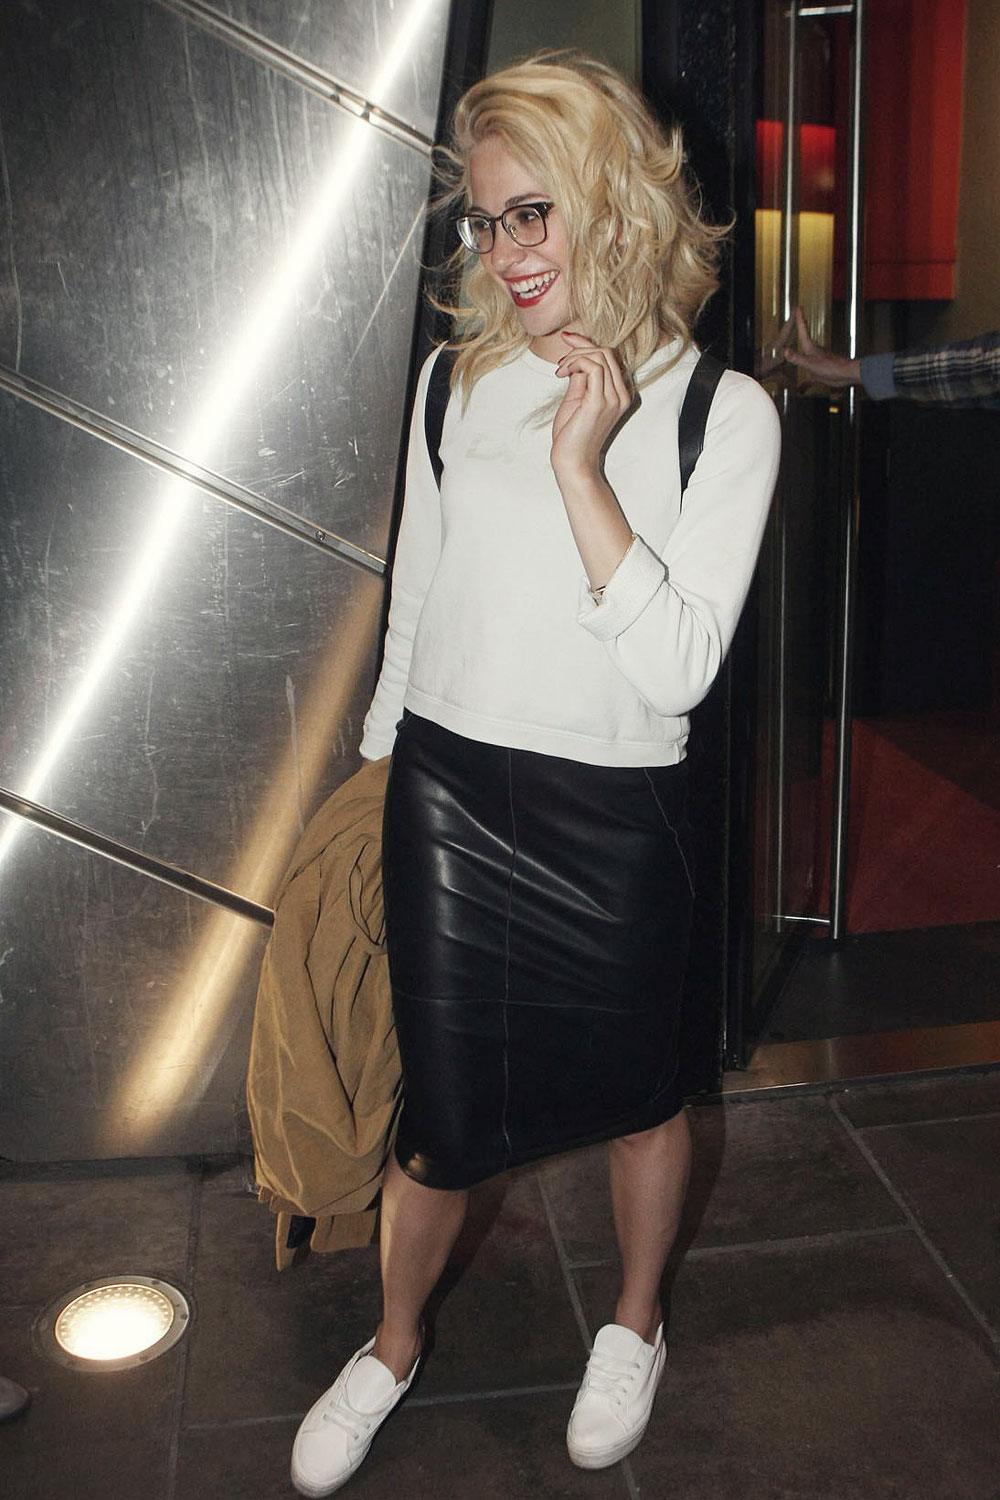 Pixie Lott leaving Bord Gais Energy Theatre